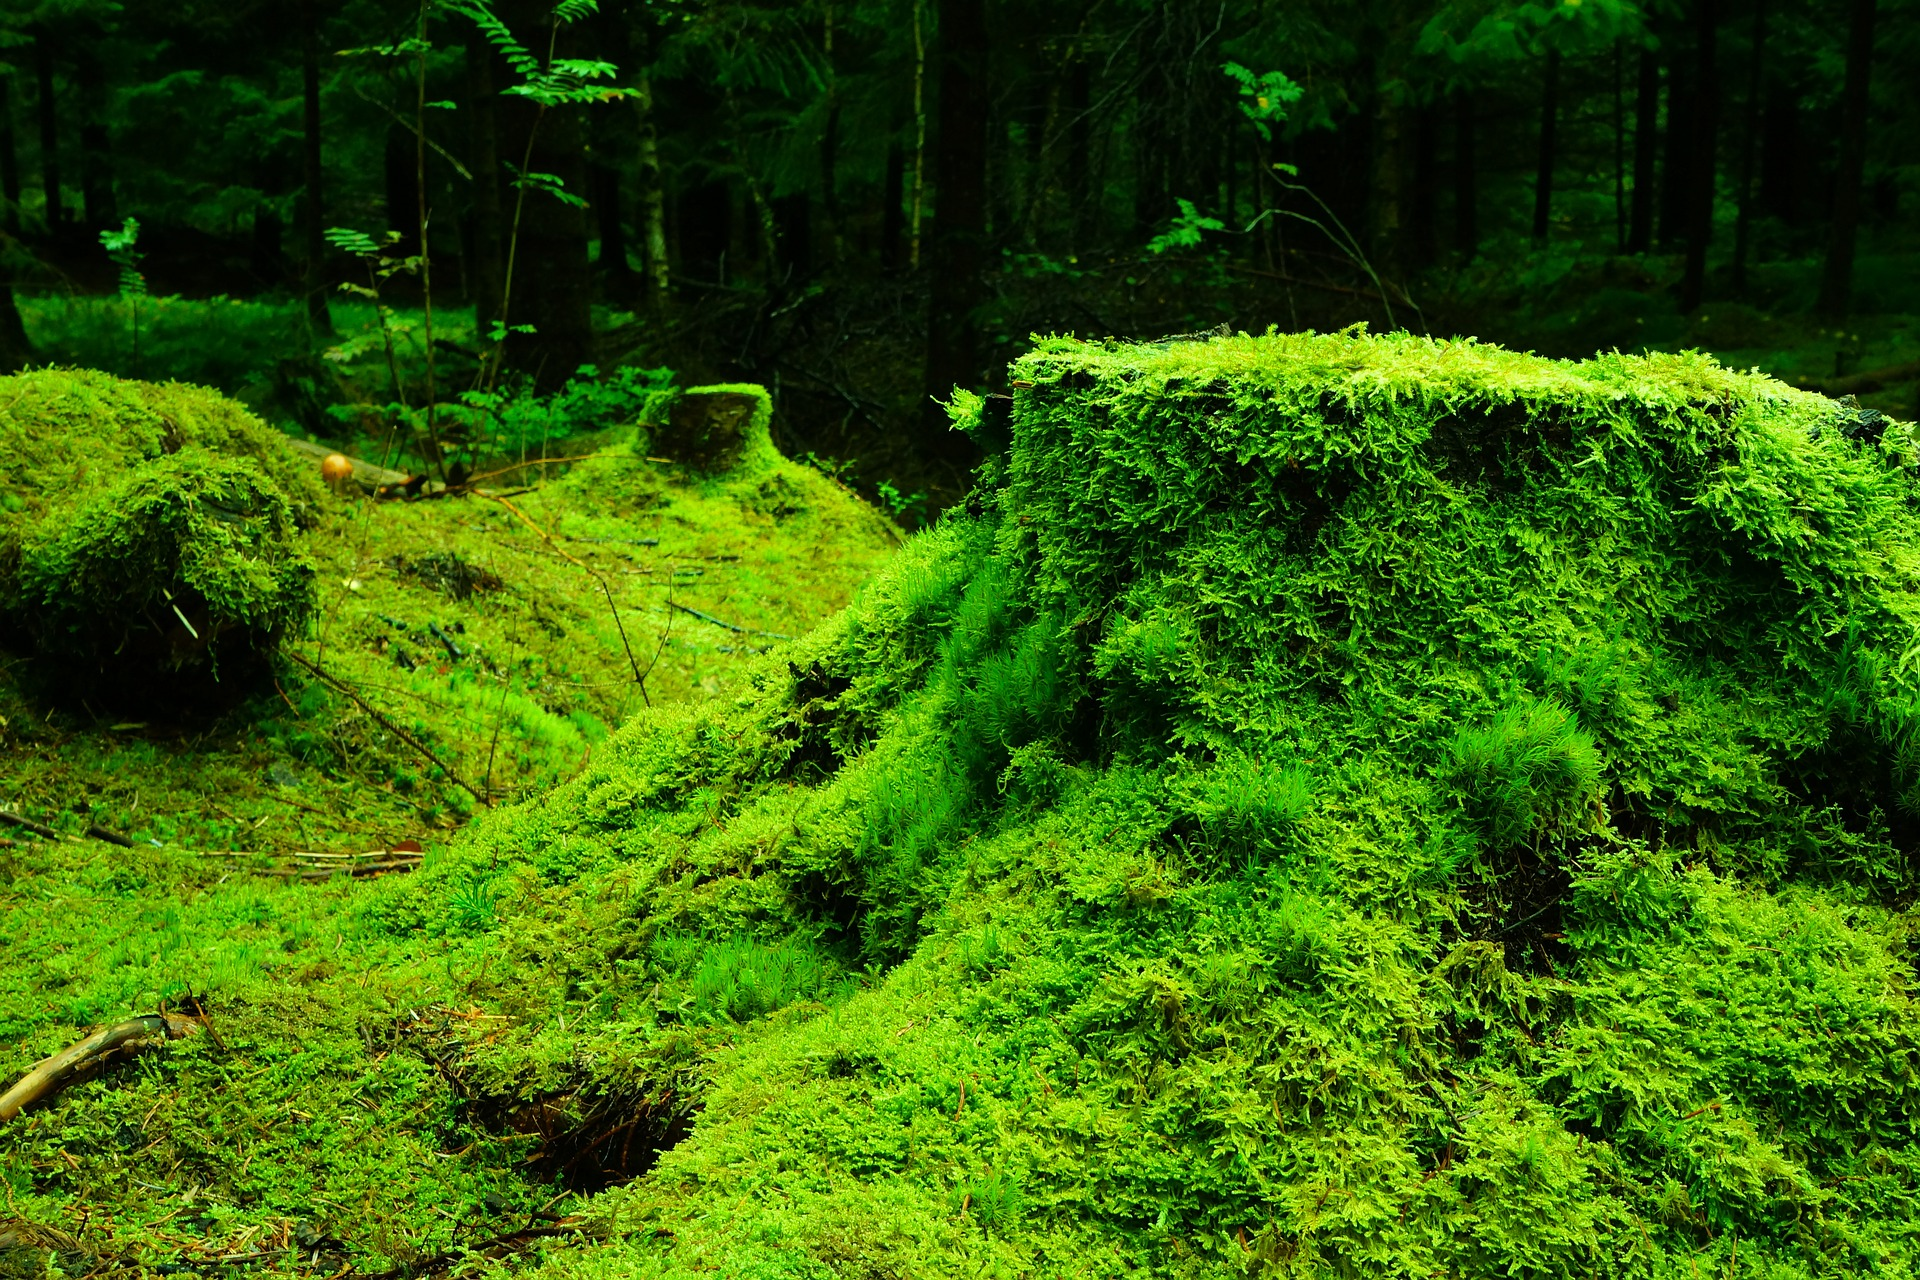 forest-483206_1920